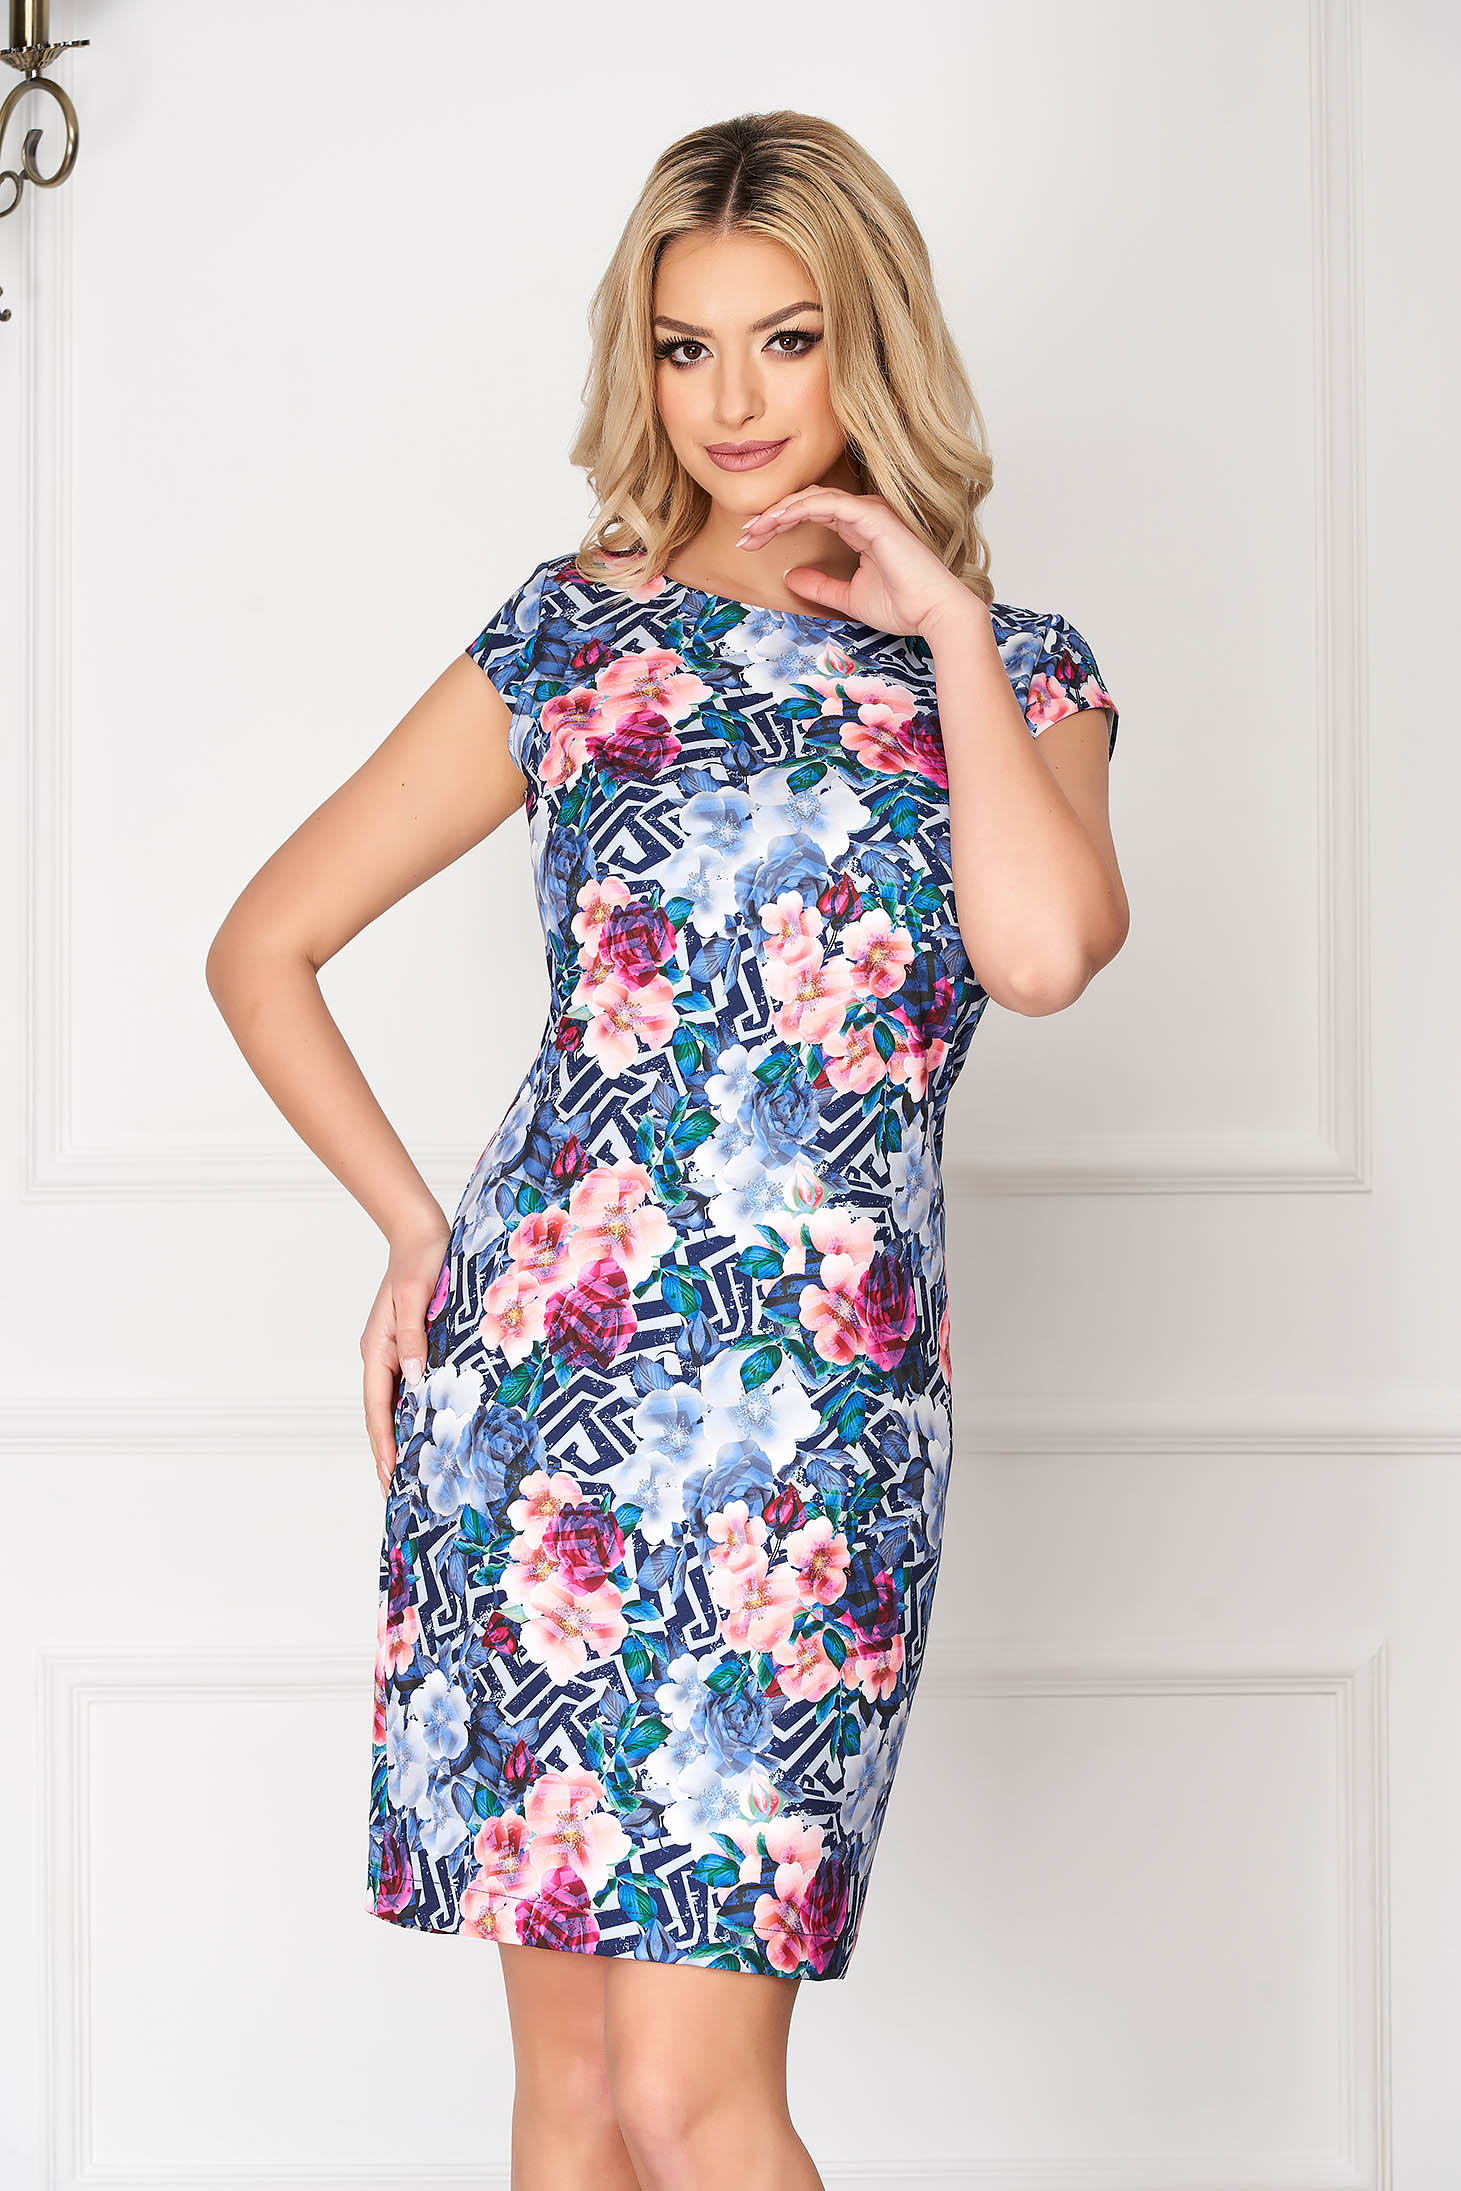 StarShinerS blue elegant short cut pencil dress short sleeves with graphic details